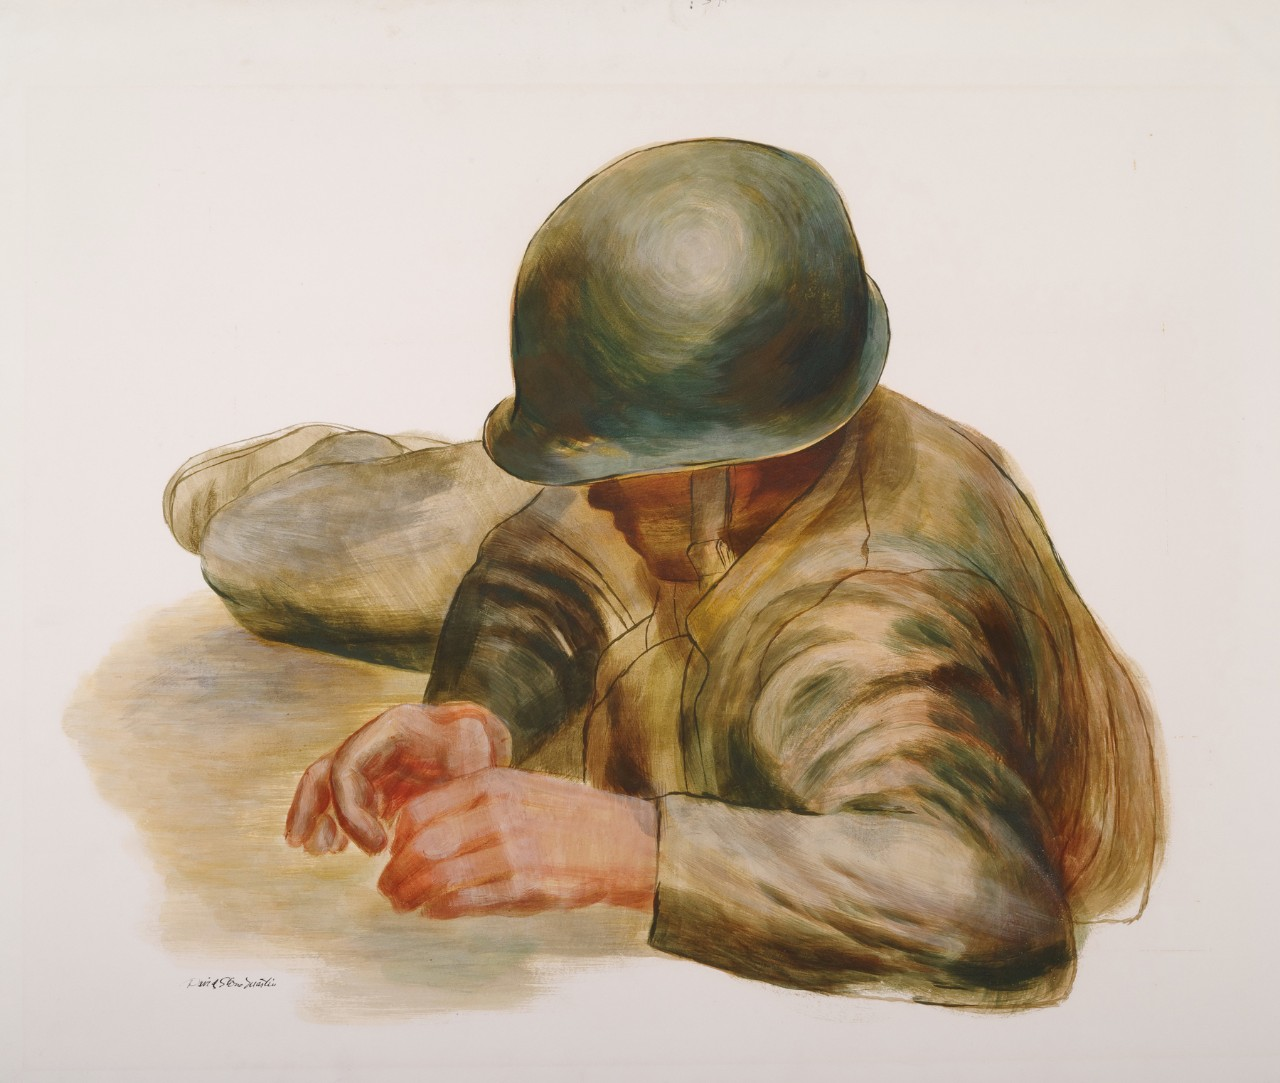 Corpsman lying on the ground